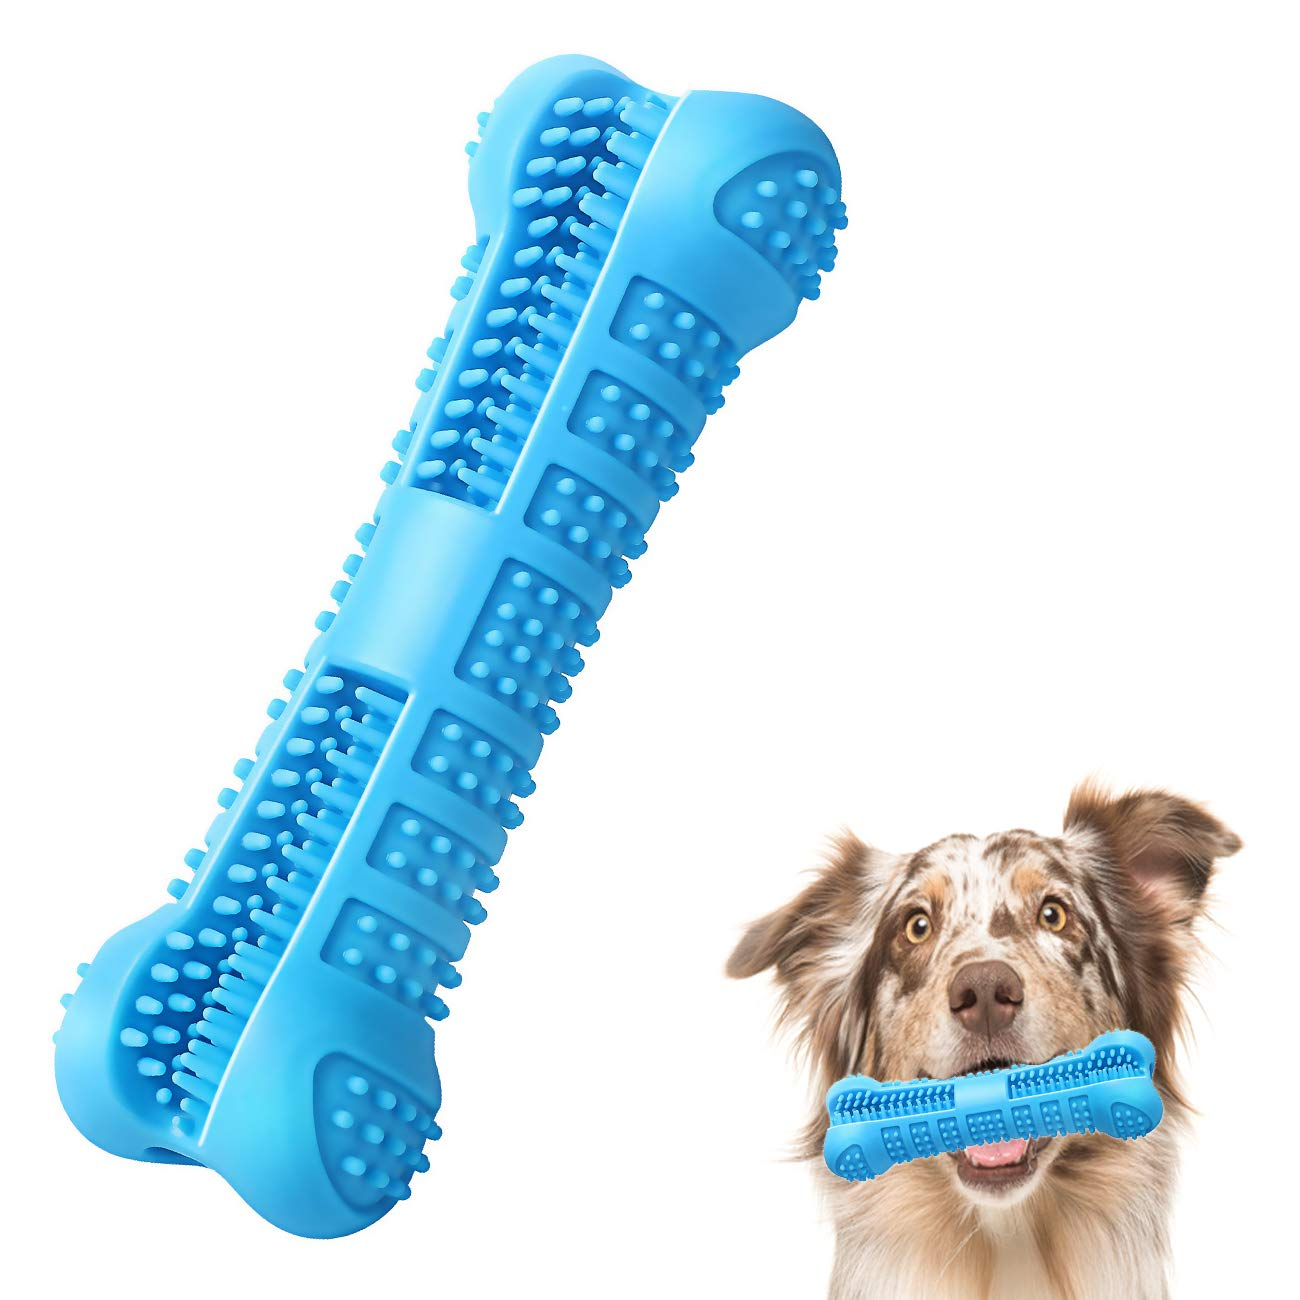 Skywoo Dog Toothbrush Stick - 2019 Upgraded Puppy Dog Teeth Cleaning Brush Deep Cleans Dental Care Effective Teeth Cleaning Kit for Small Medium Dogs Pets - Blue by Skywoo